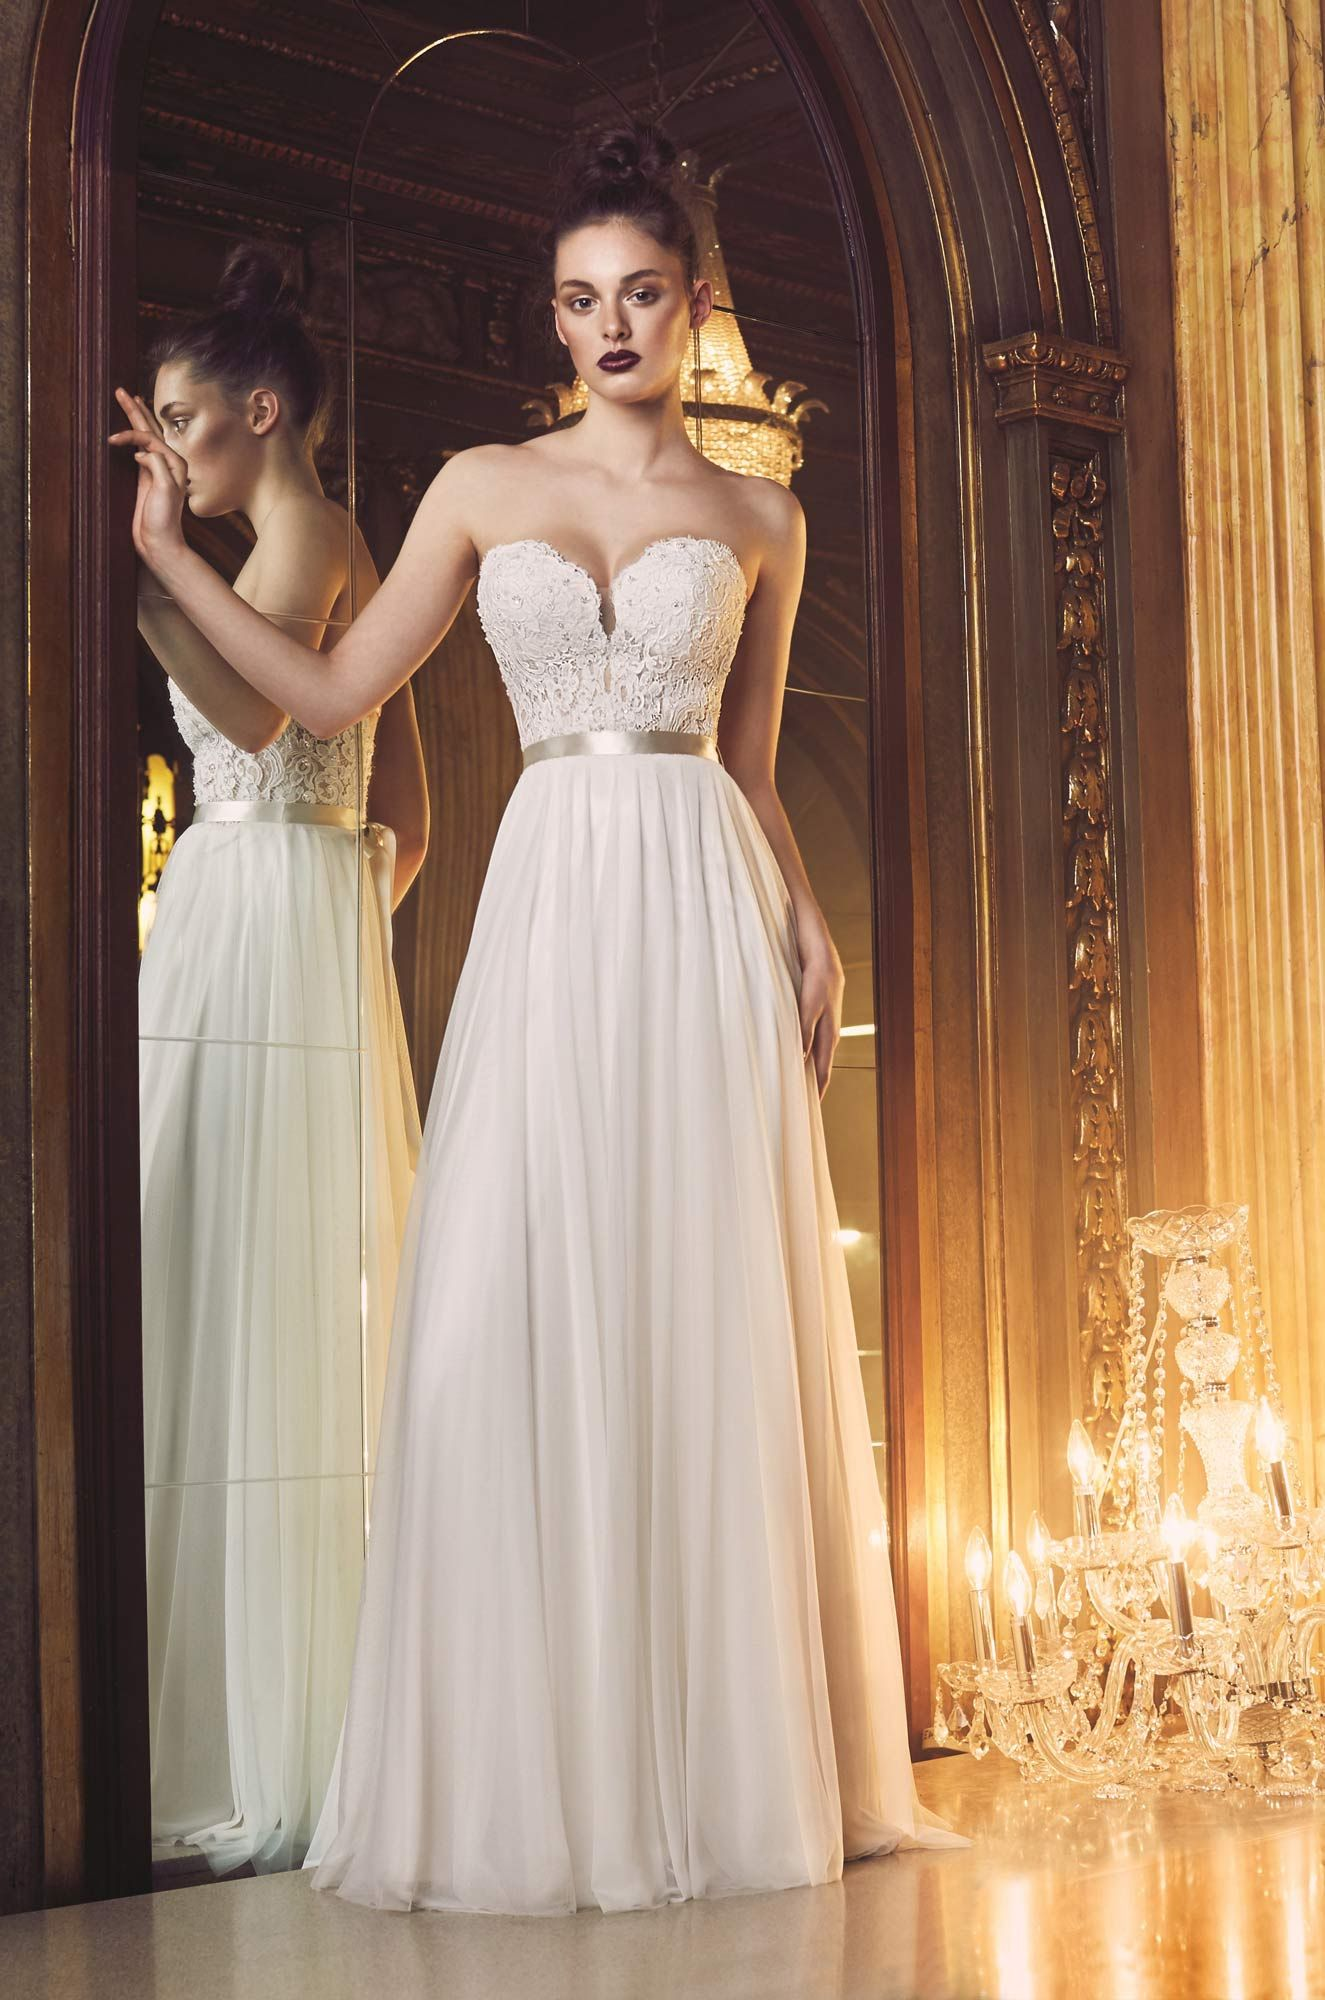 View Our Gathered Tulle Wedding Dress Style 4707 From Paloma Blanca Strapless Beaded Lace Corset Bodice With Plunging Neckline Full Mesh Skirt